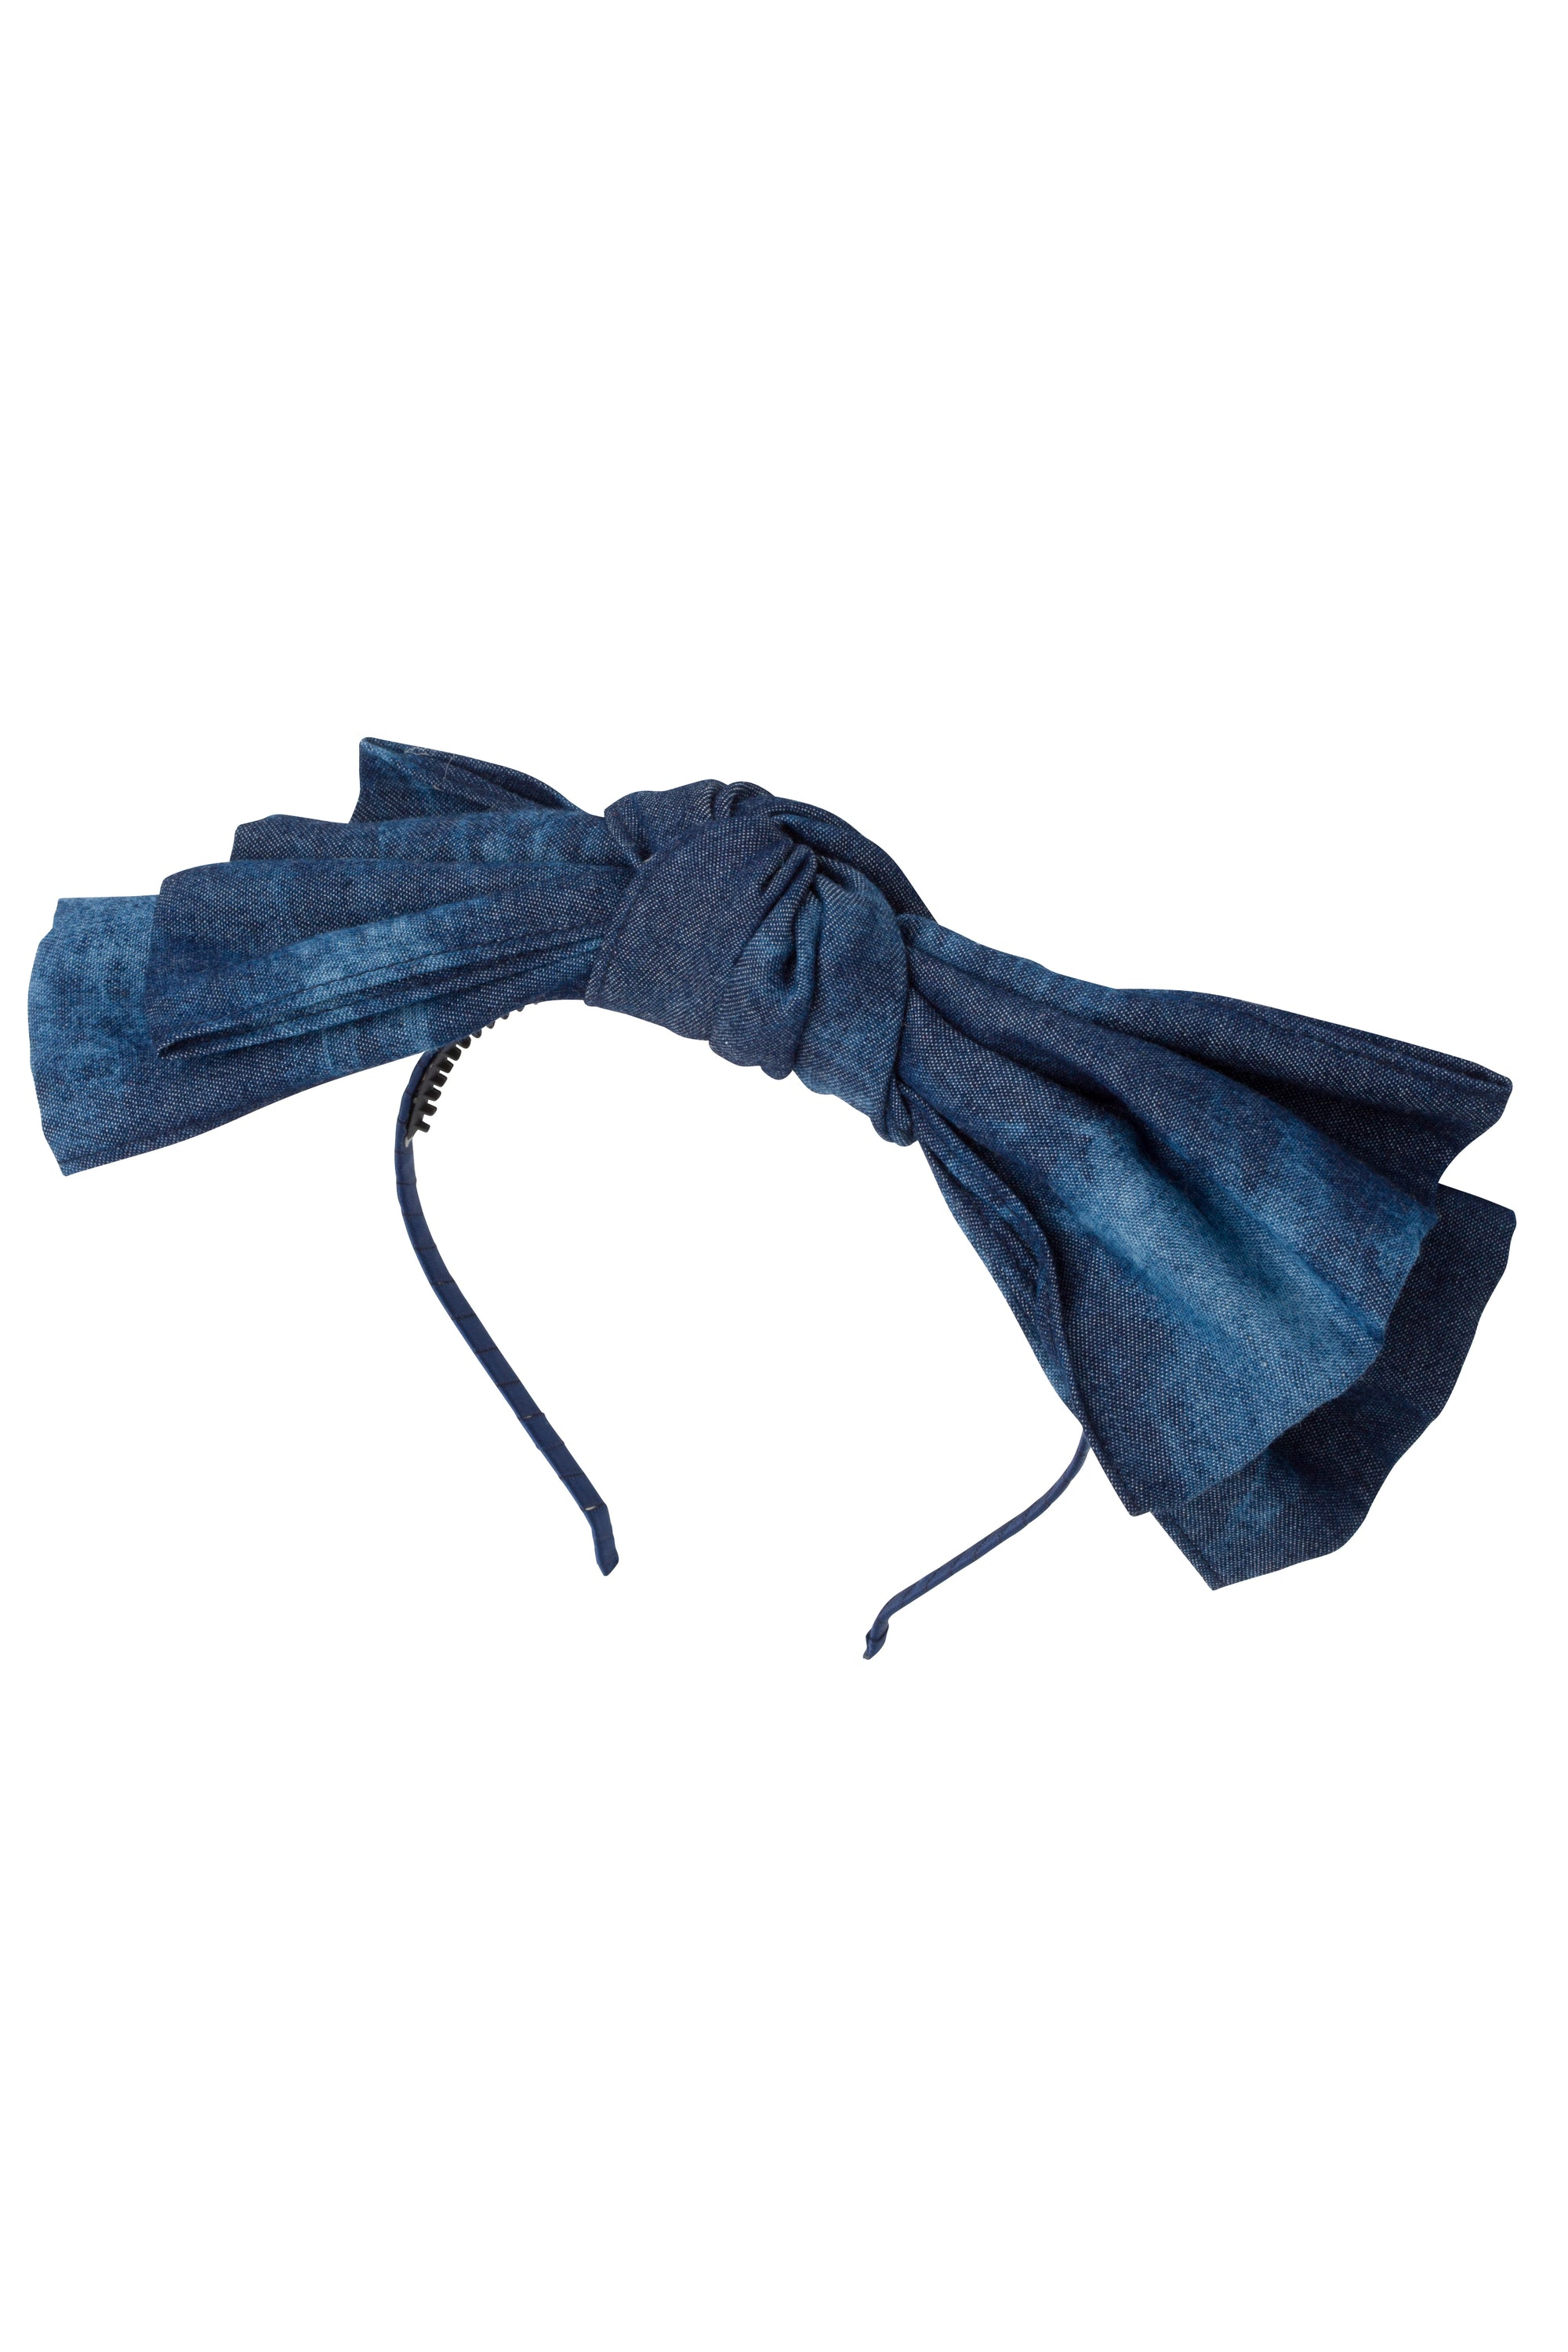 Floppy Denim Headband - Invisible Tye Dye - PROJECT 6, modest fashion